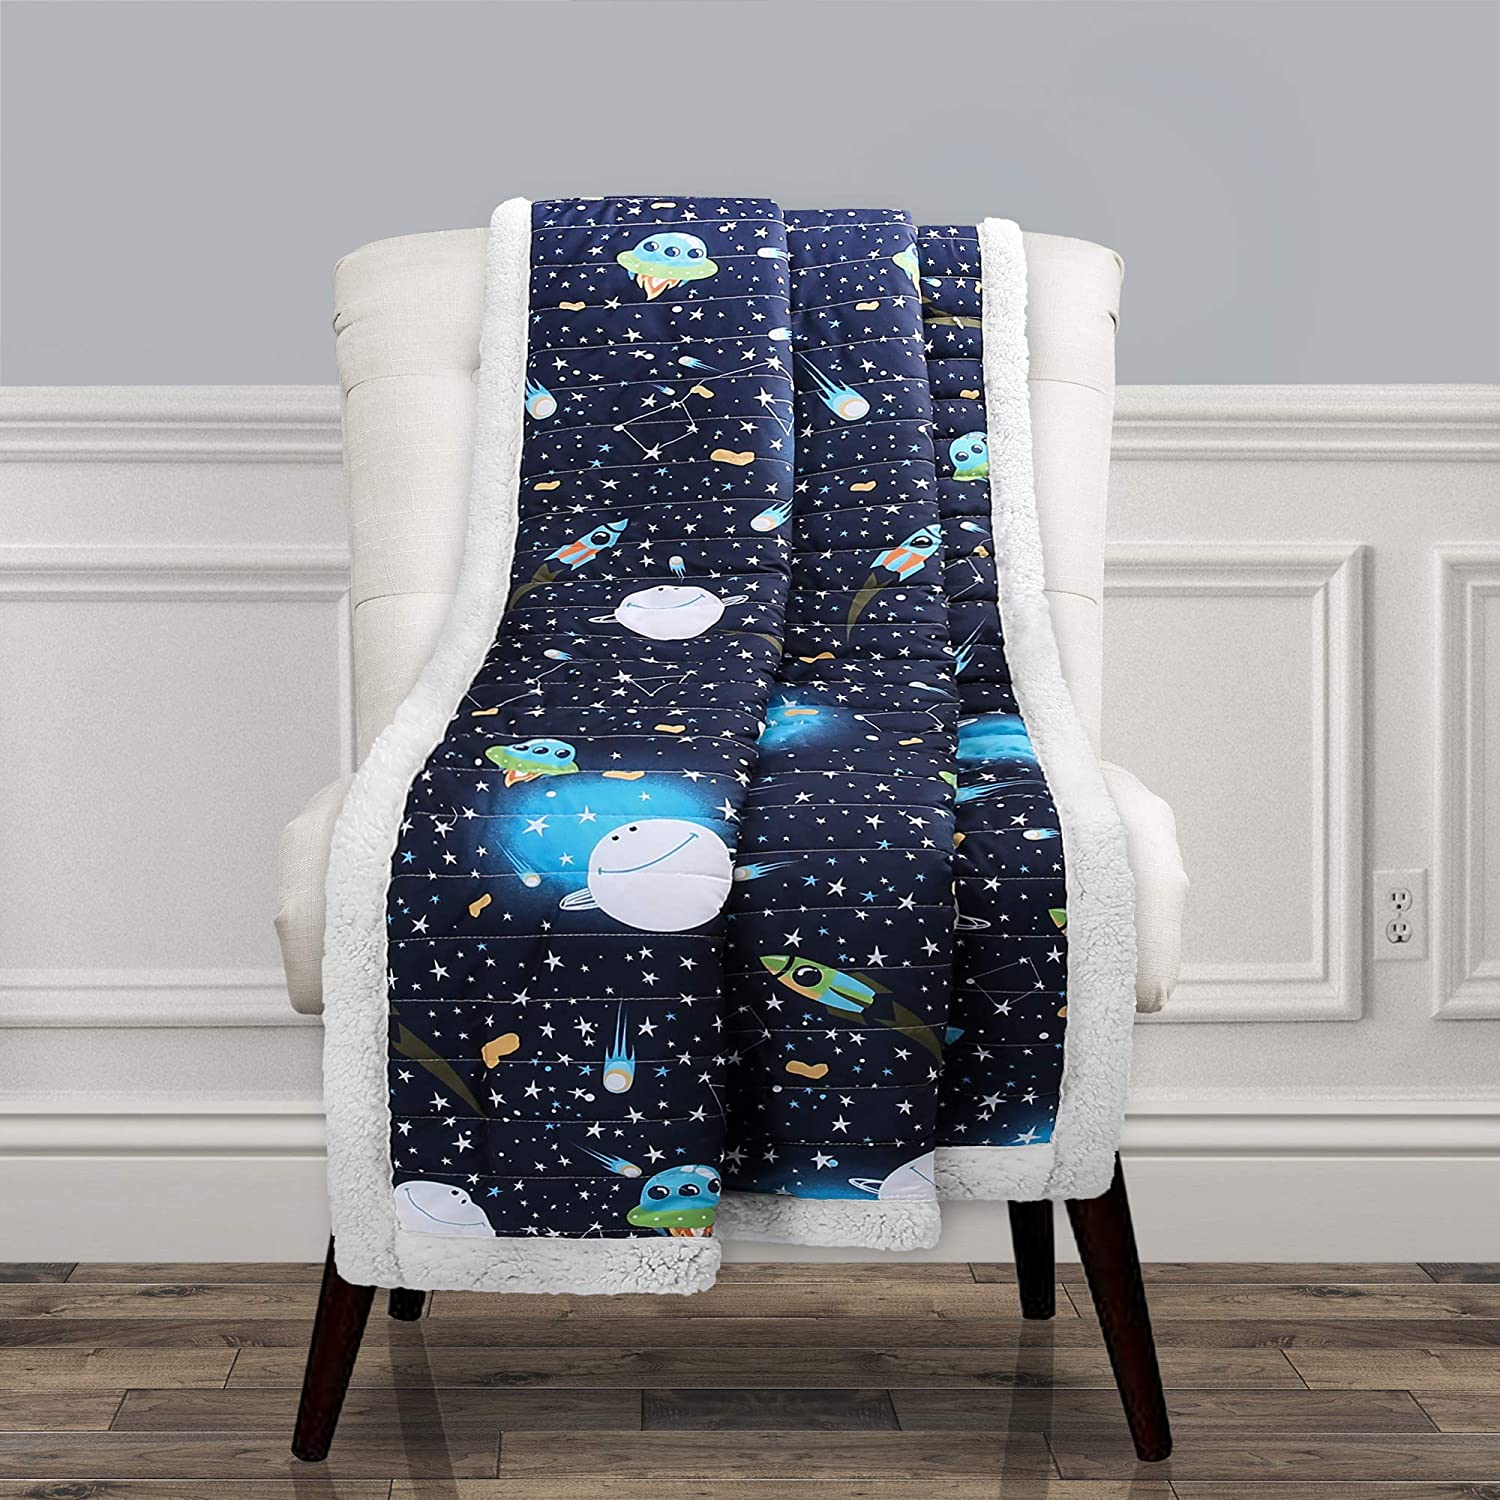 "Lush Decor, Navy Universe Sherpa Throw-Outer Space Stars Galaxy Planet Rocket Pattern Reversible Blanket-60"" x 50, 60"" x 50"""